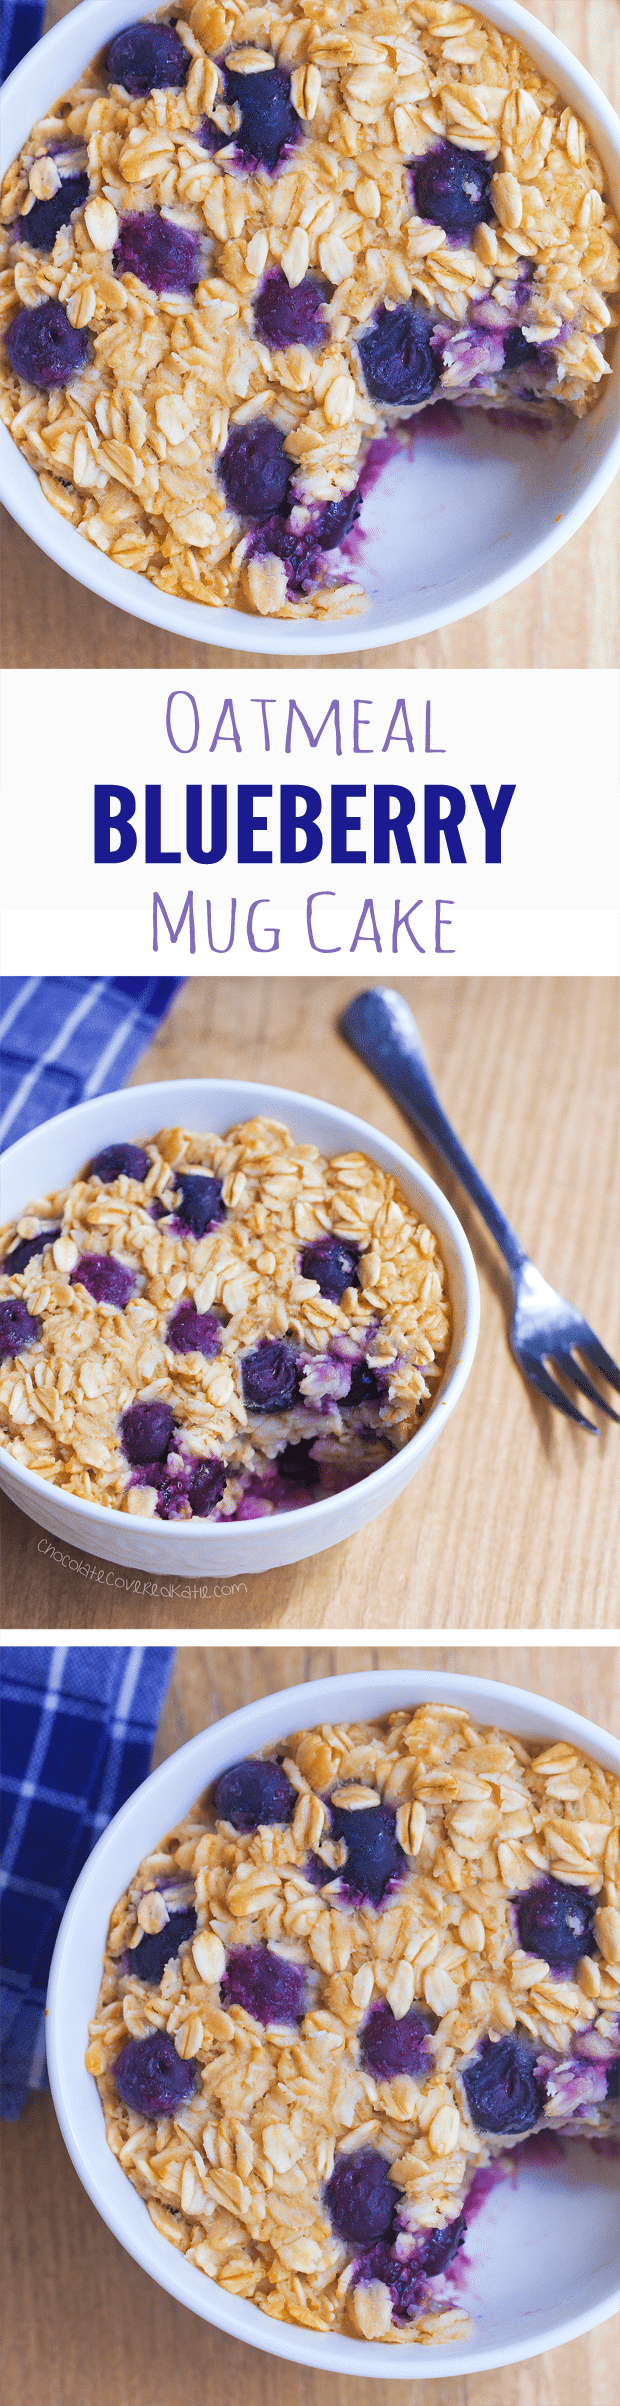 Blueberry Baked Oatmeal Mug Cake Chocolate Covered Katie